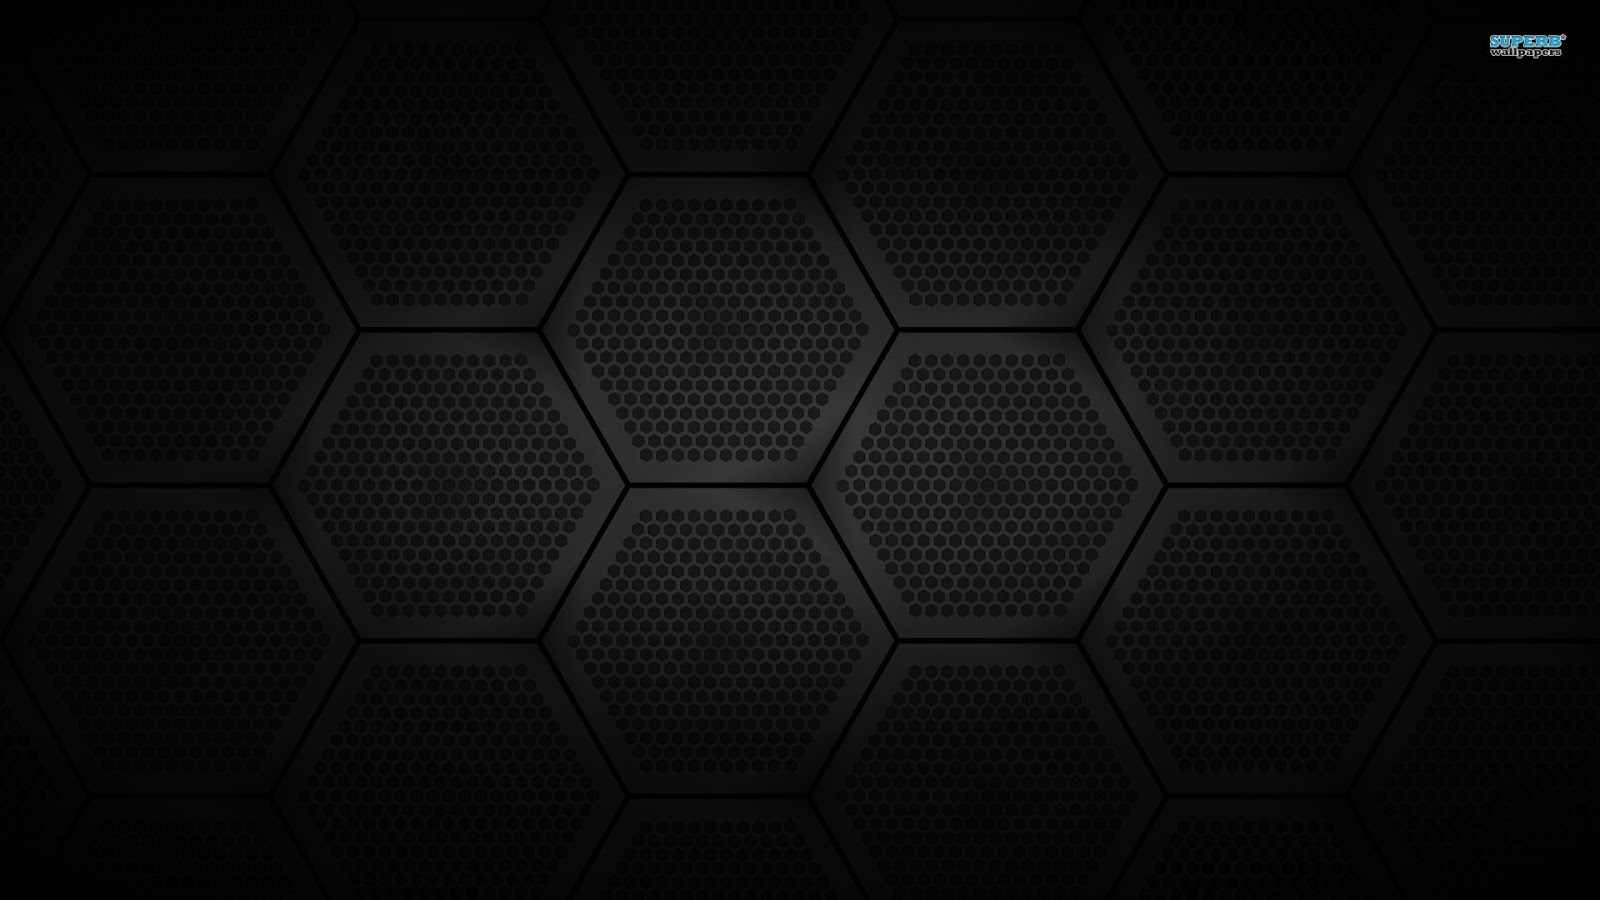 5760 x 1080 Wallpapers